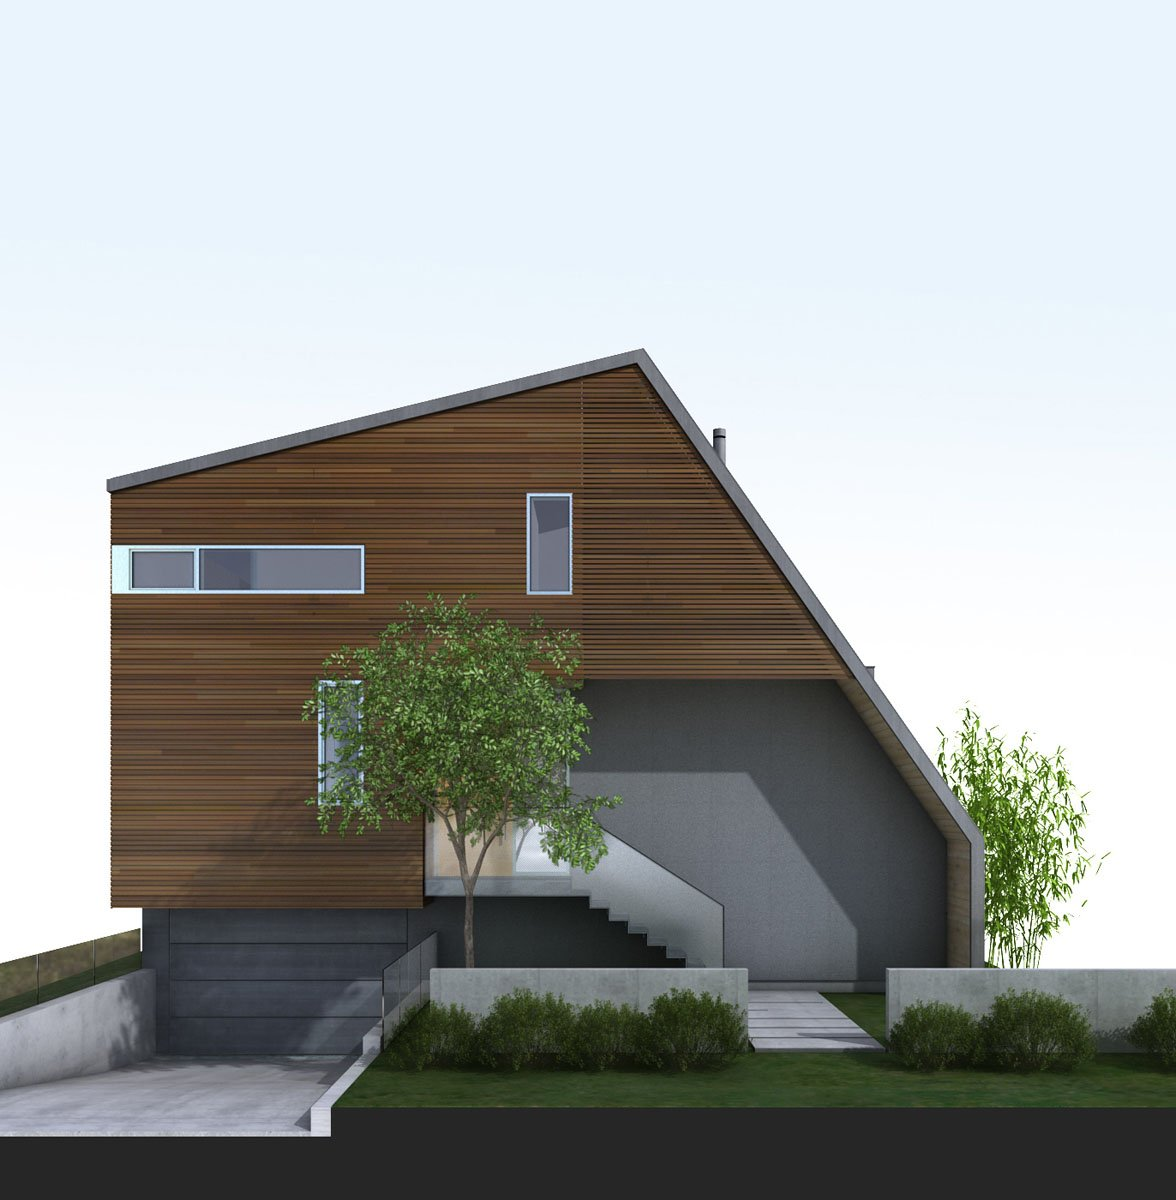 East-Van-House-by-Splyce-Design-19